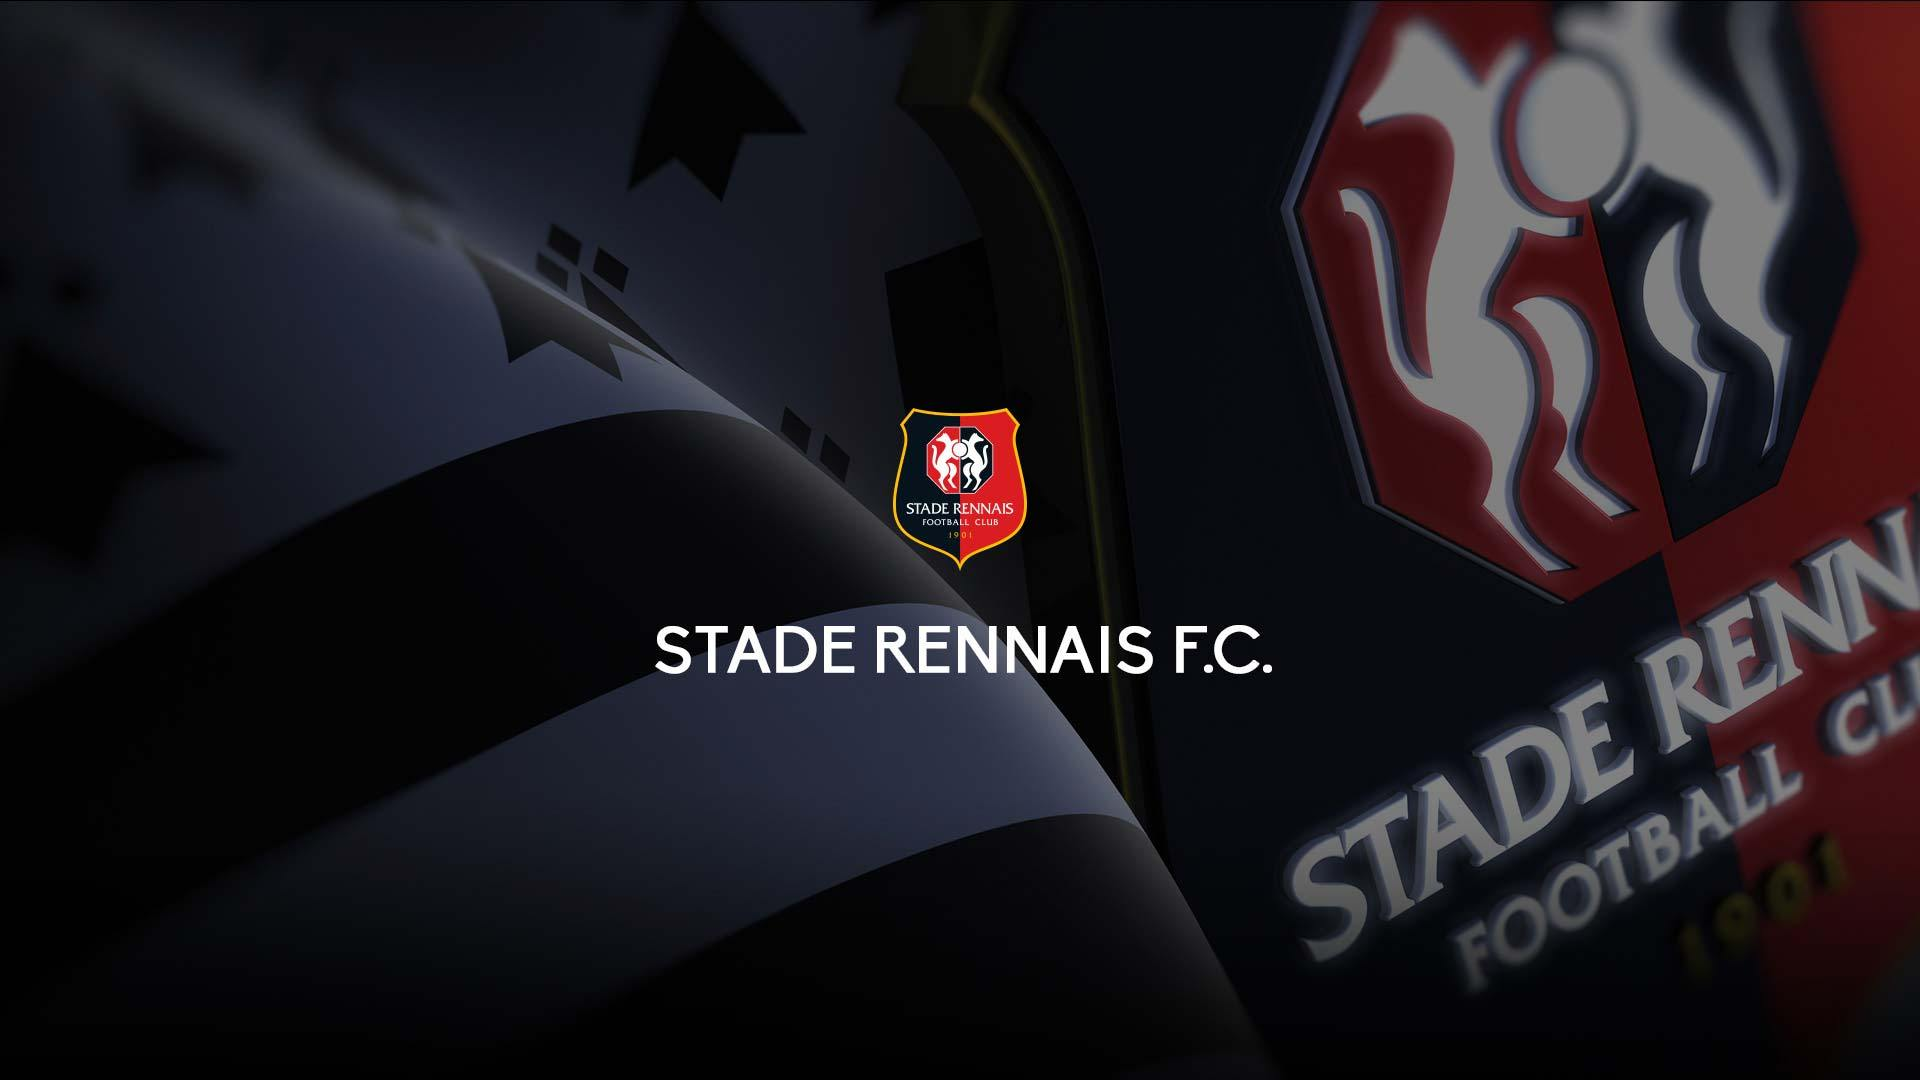 Stade Rennais F.C. Wallpapers